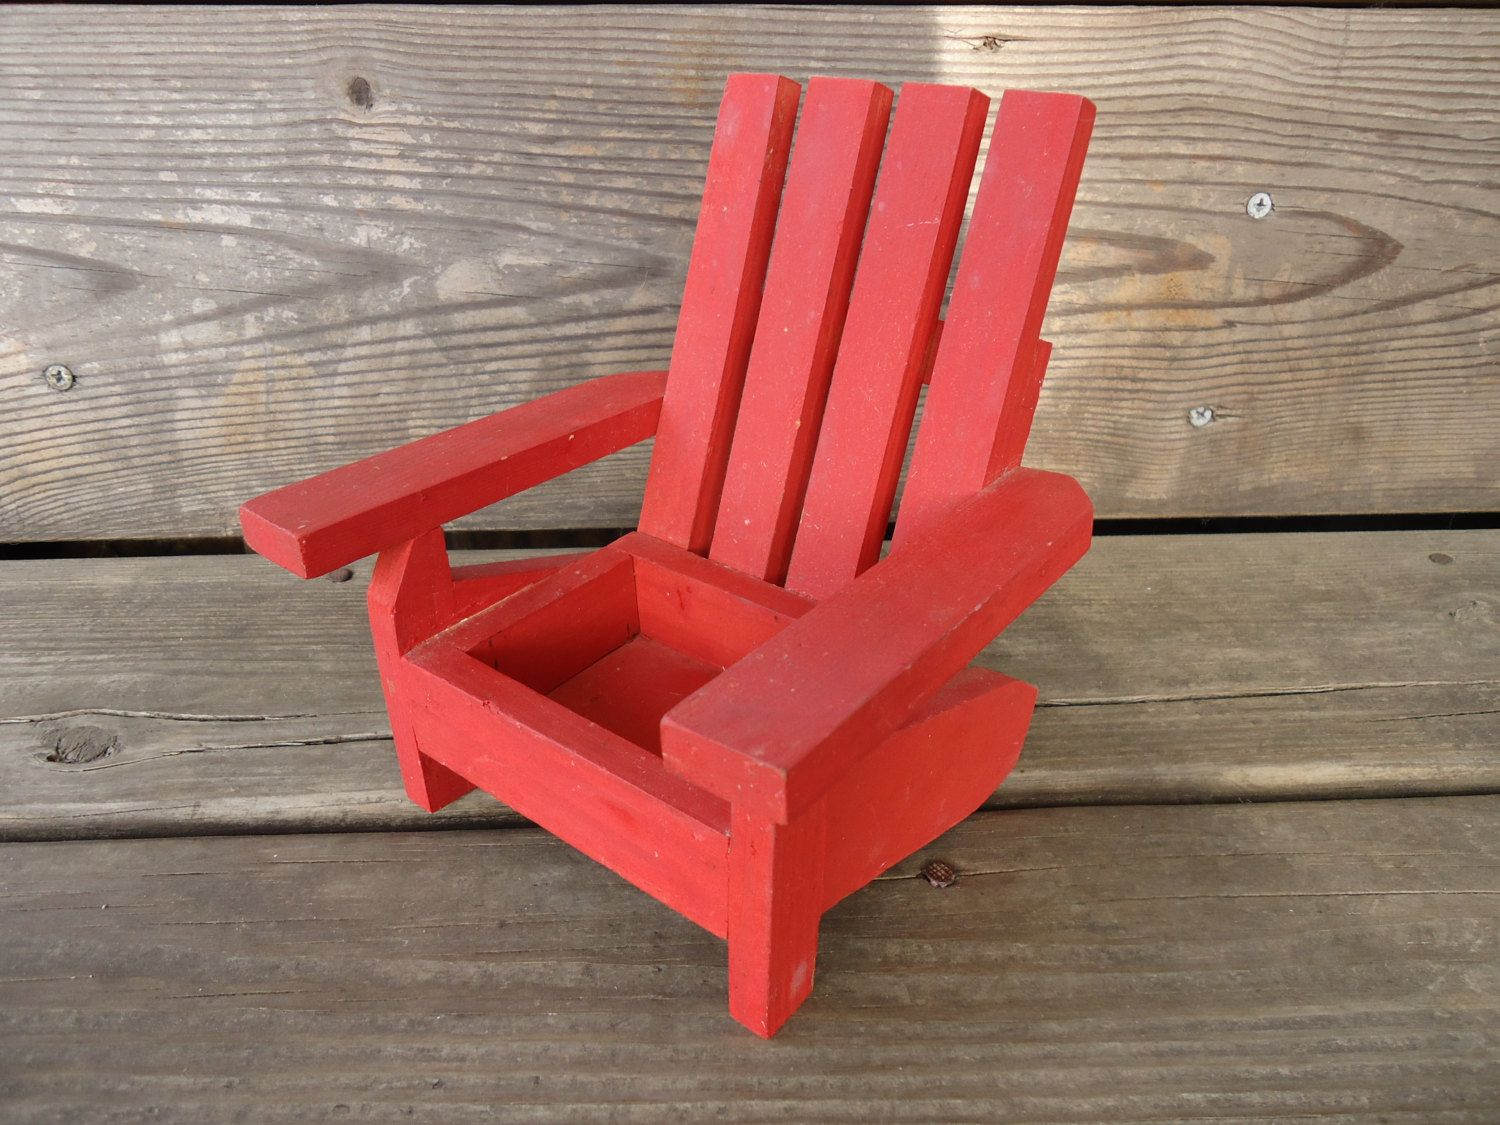 Wooden Miniature Adirondack Chair By Catsandclover On Etsy